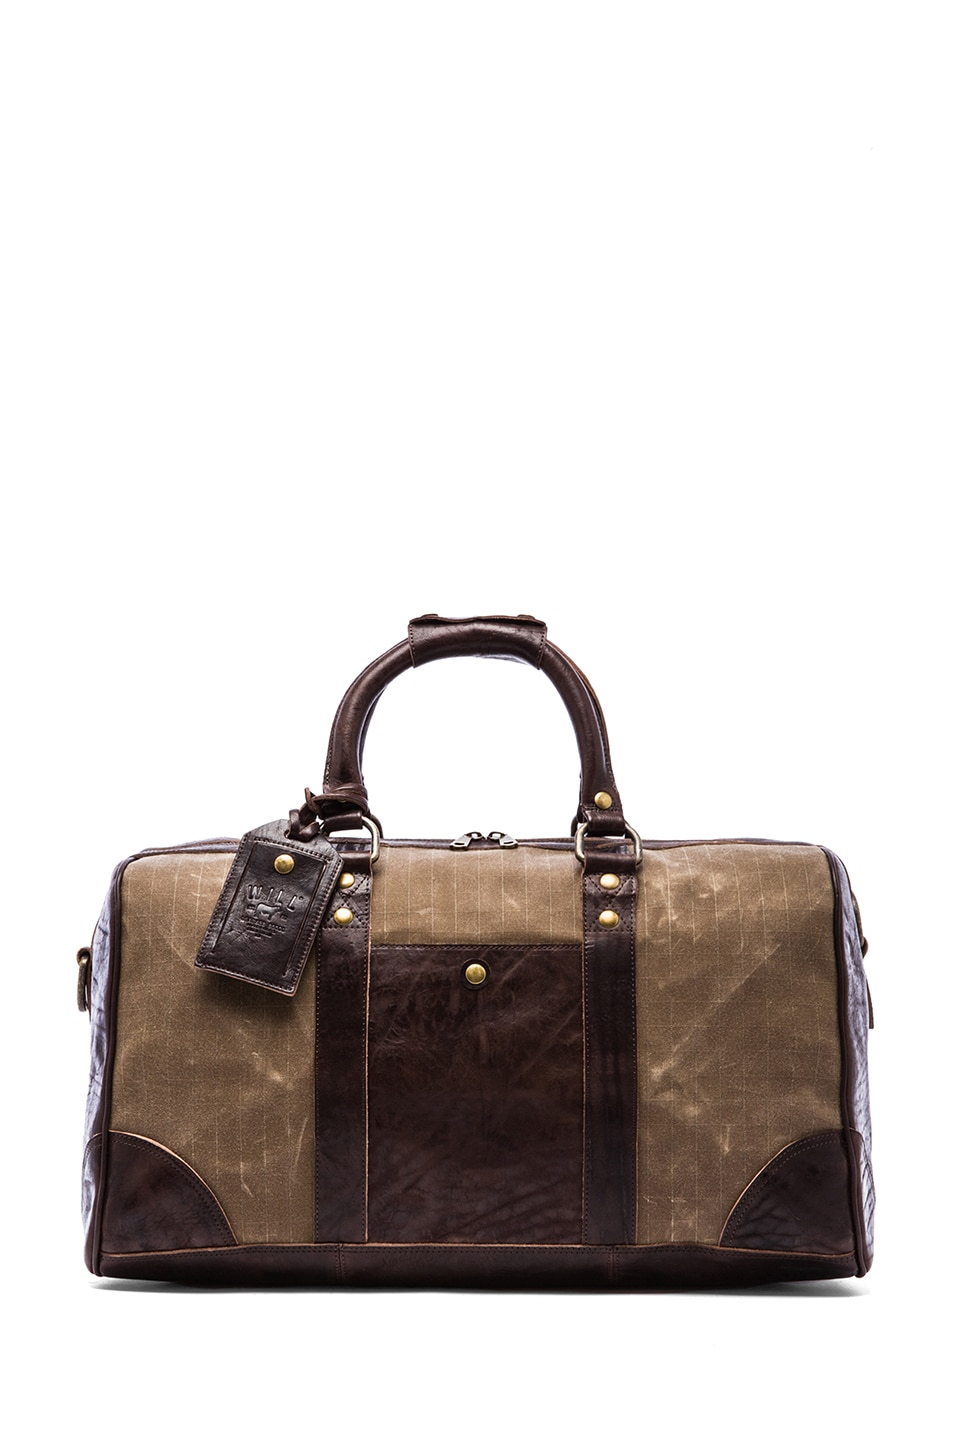 WILL Leather Goods The Snowbird Duffle in Tan Brown